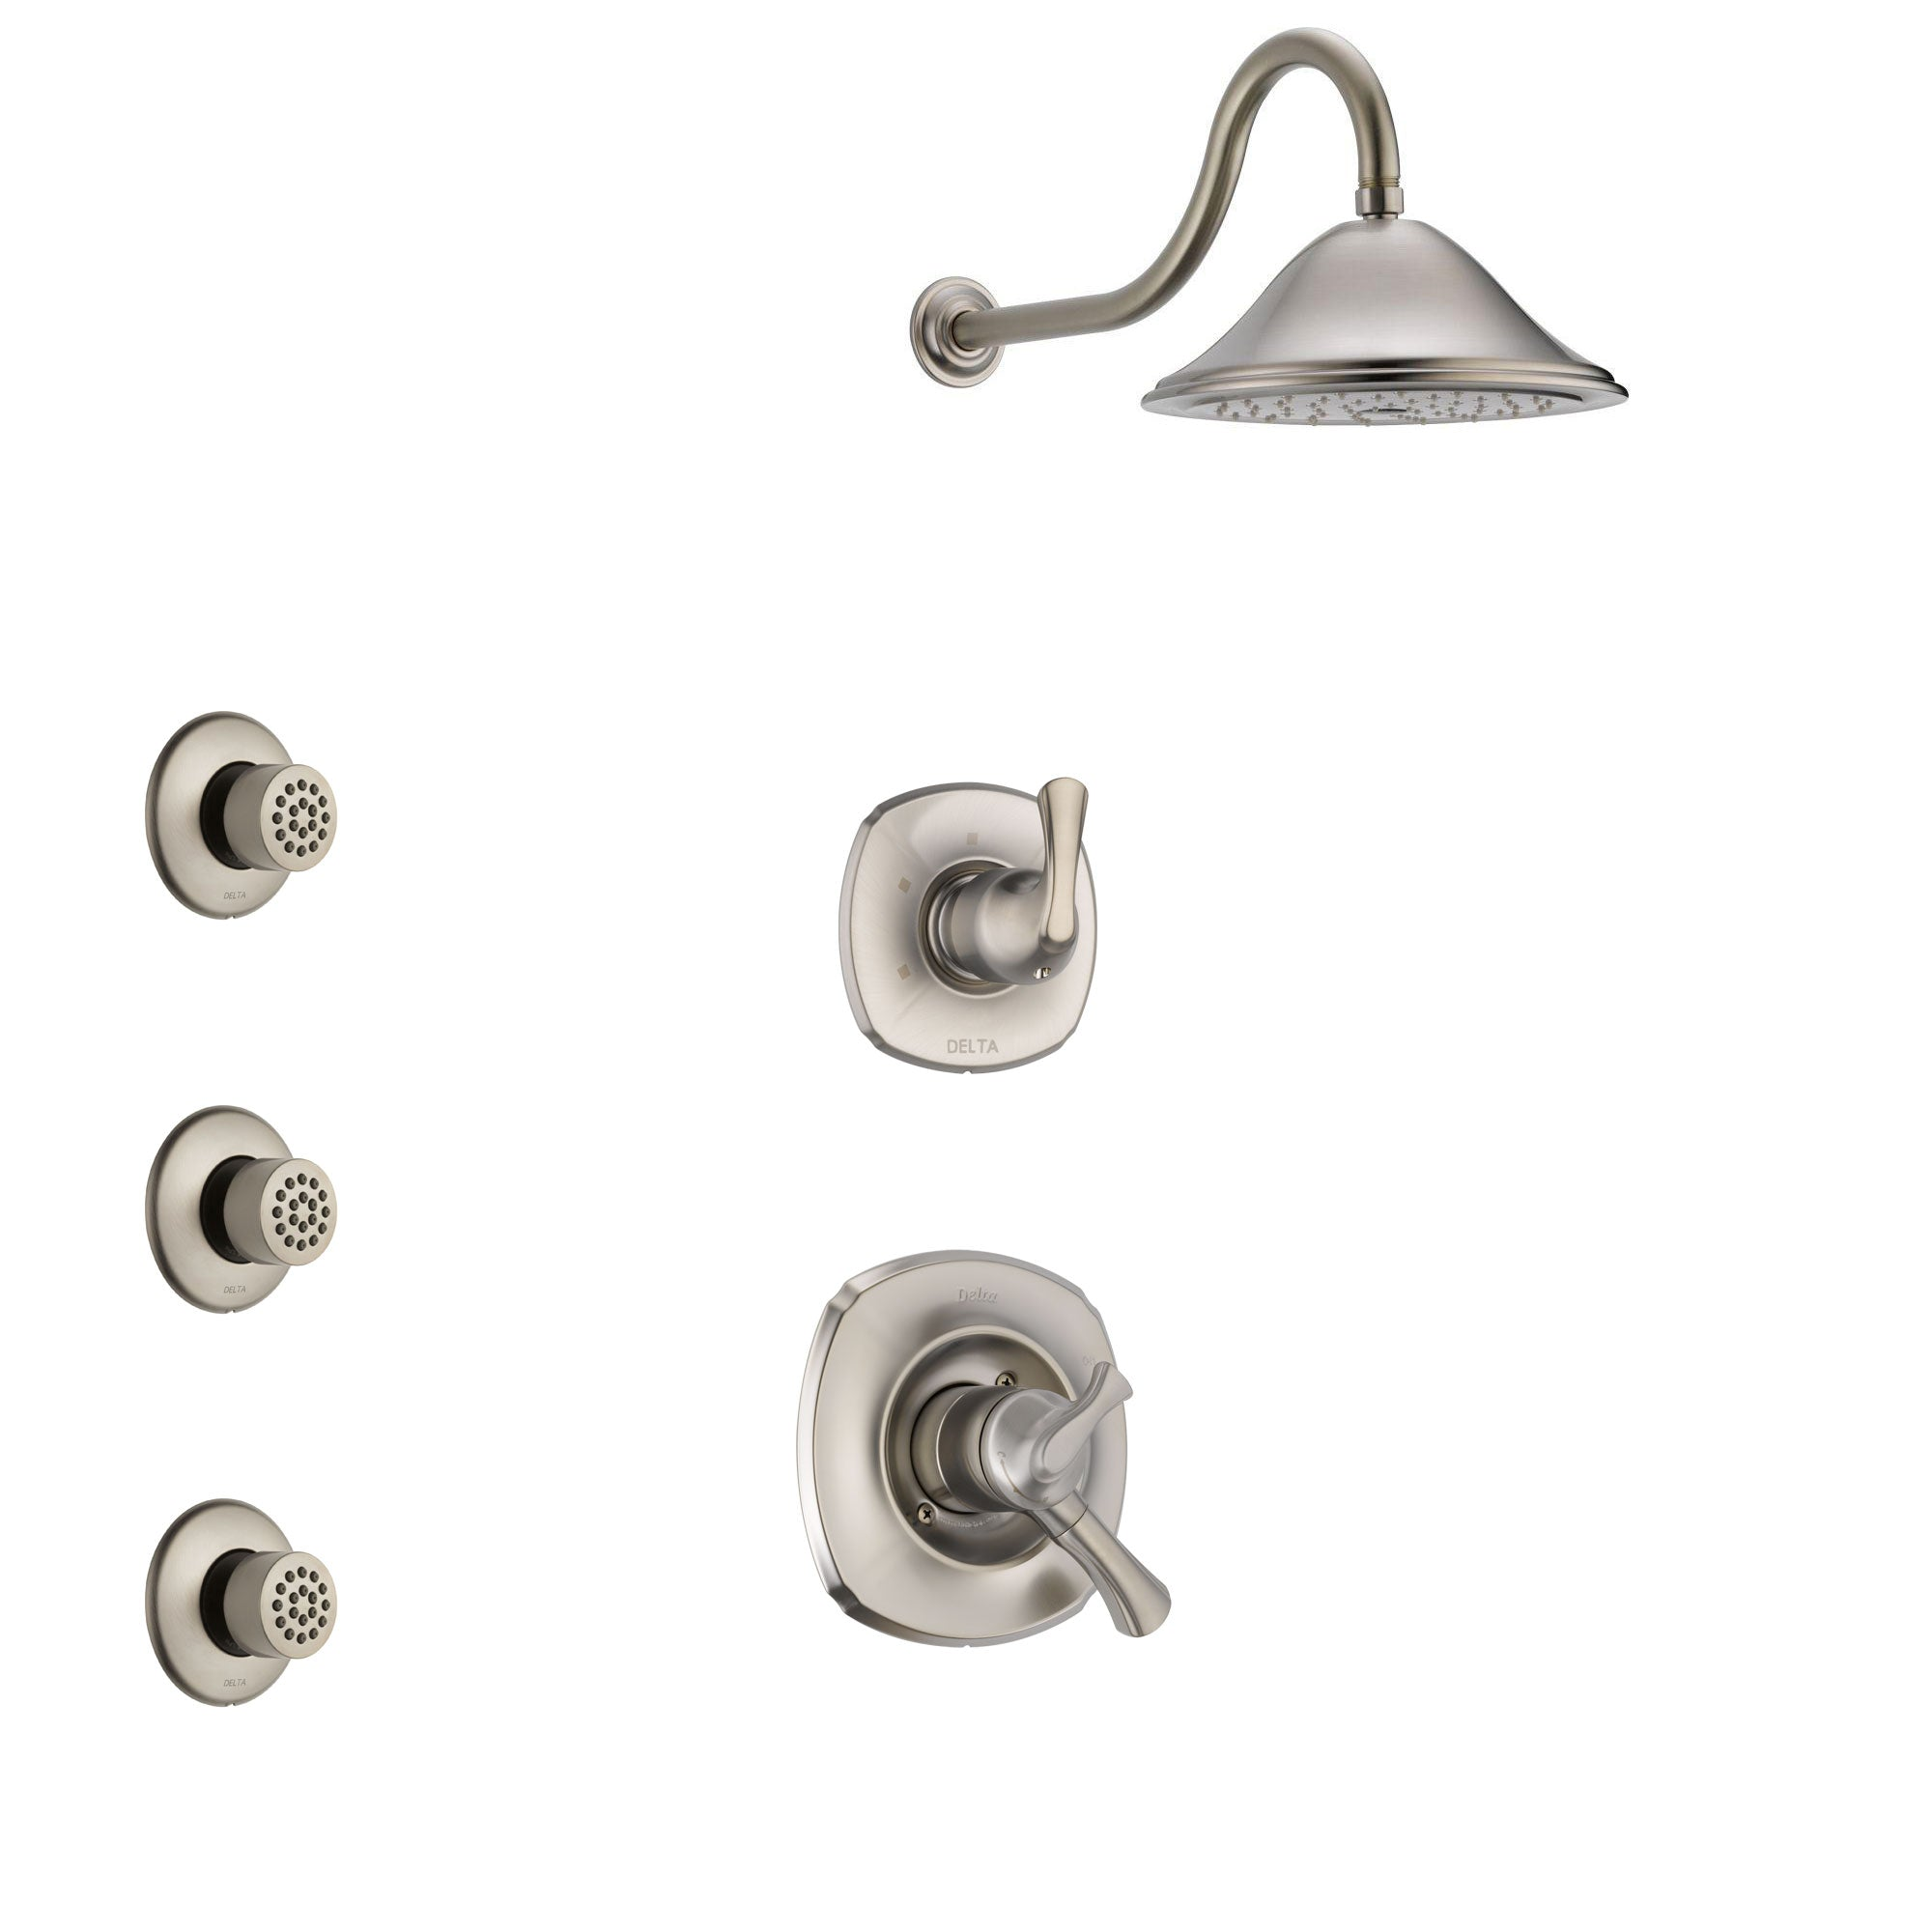 Delta Addison Stainless Steel Finish Shower System with Dual Control Handle, 3-Setting Diverter, Showerhead, and 3 Body Sprays SS1792SS3